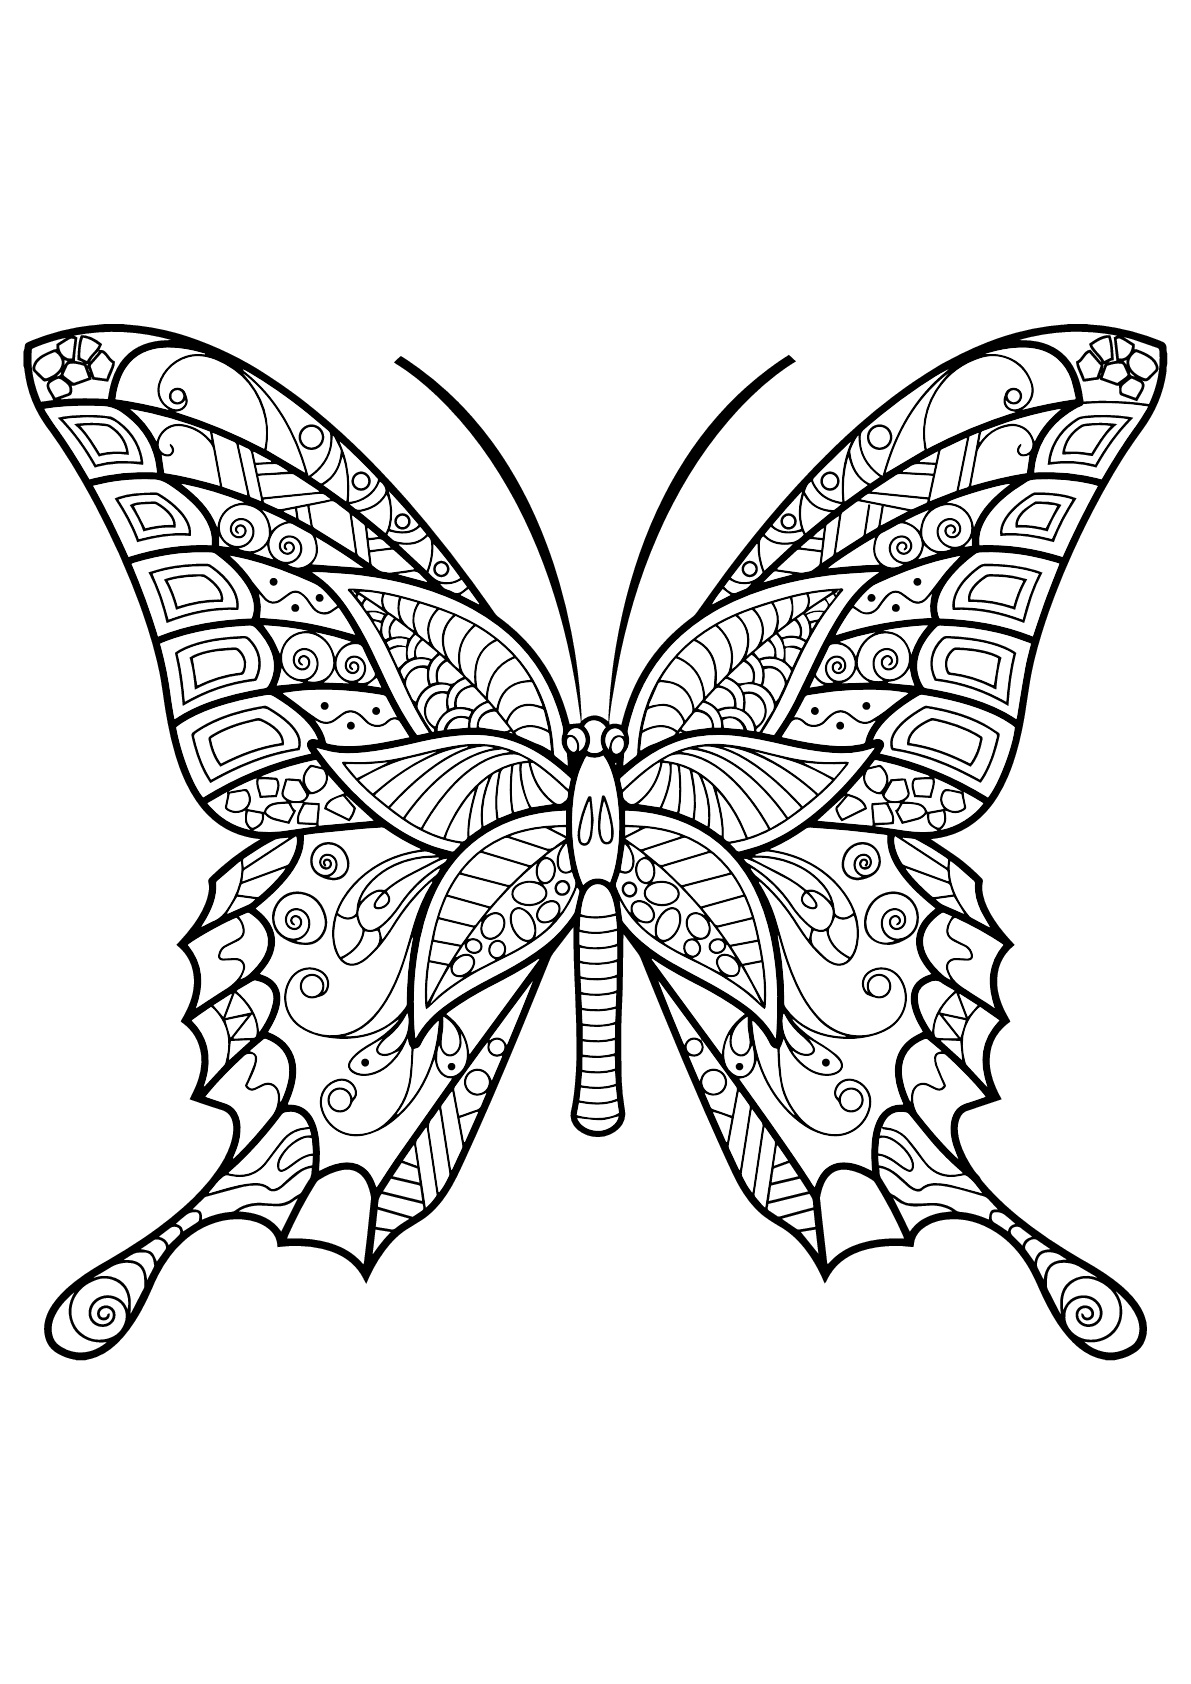 Butterflies free to color for children - Butterflies Kids ...